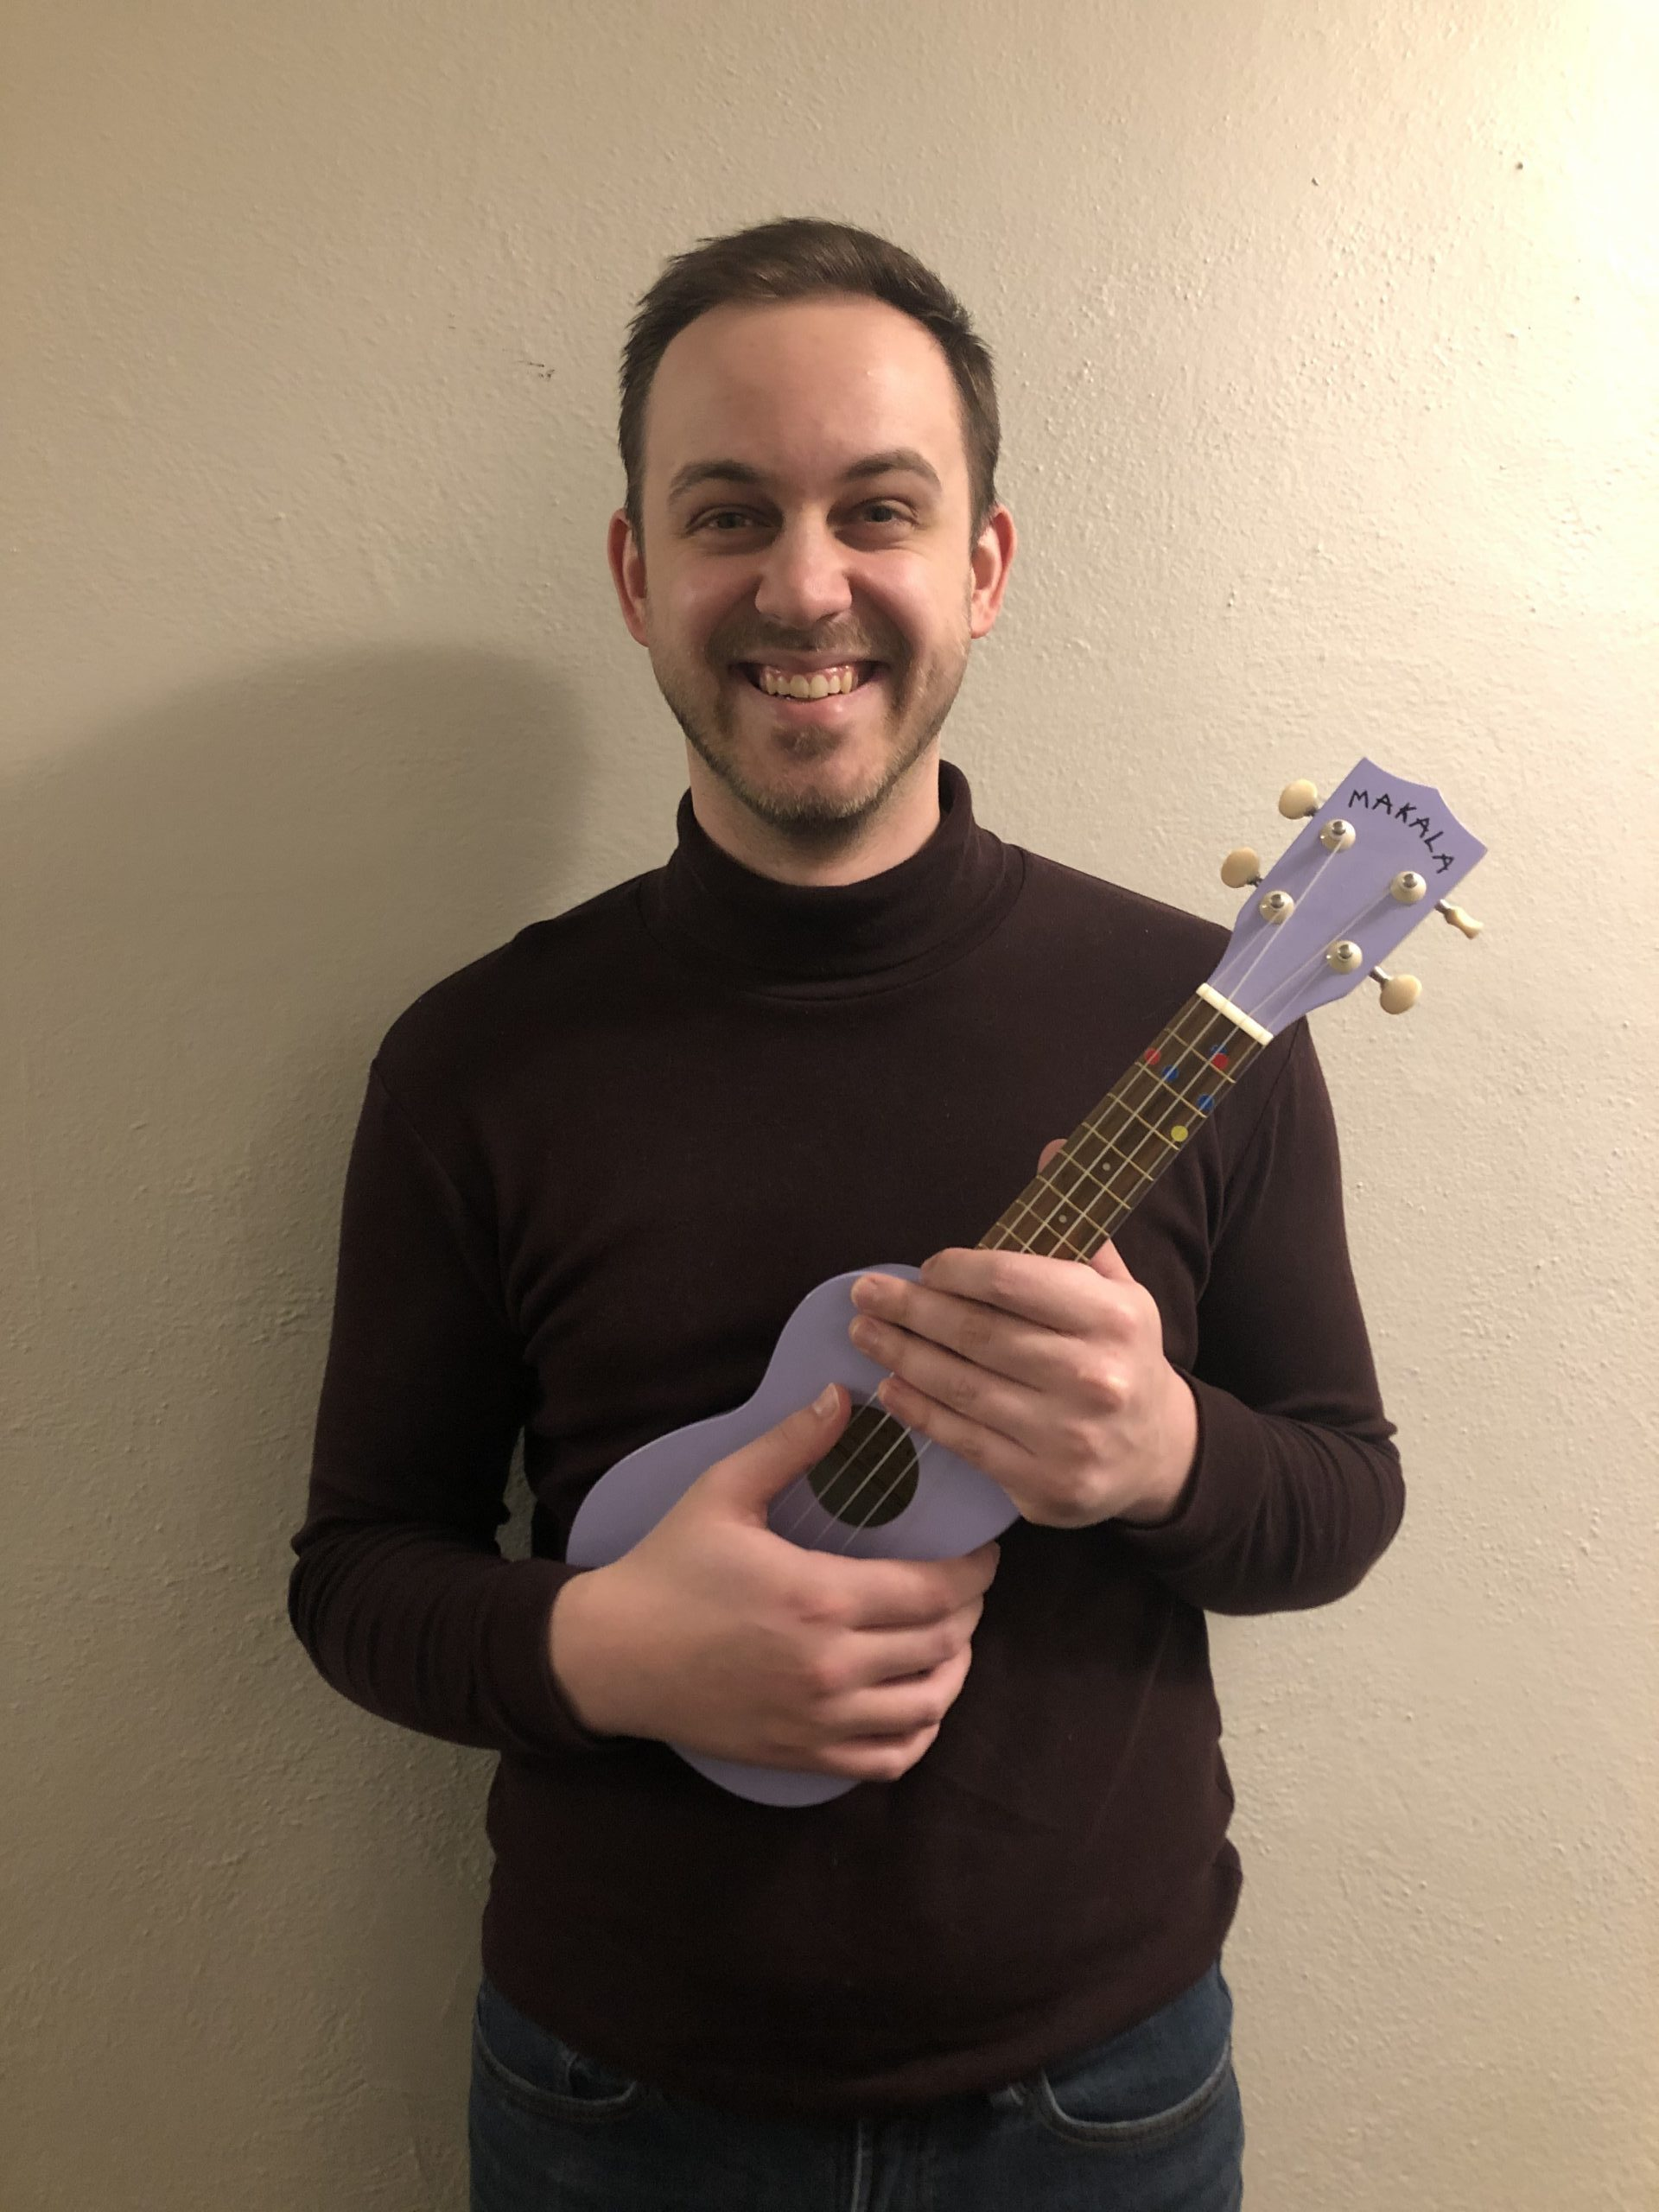 Brad smiling and holding a lilac painted ukulele.